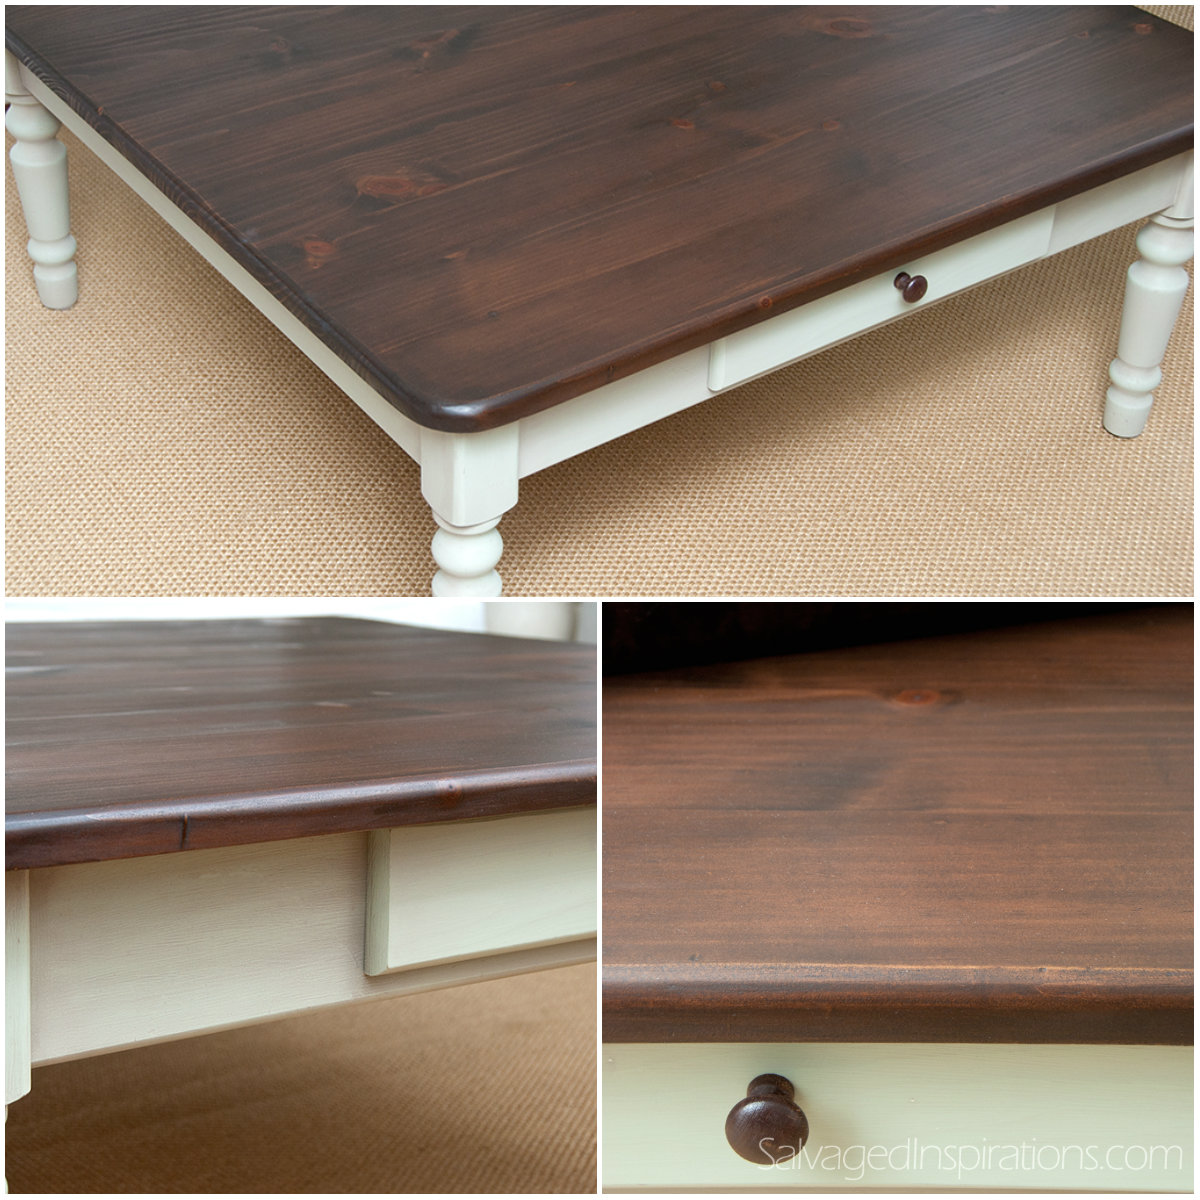 Staining Pine table with general finishes java gel stain in espresso and white stand for home furniture ideas